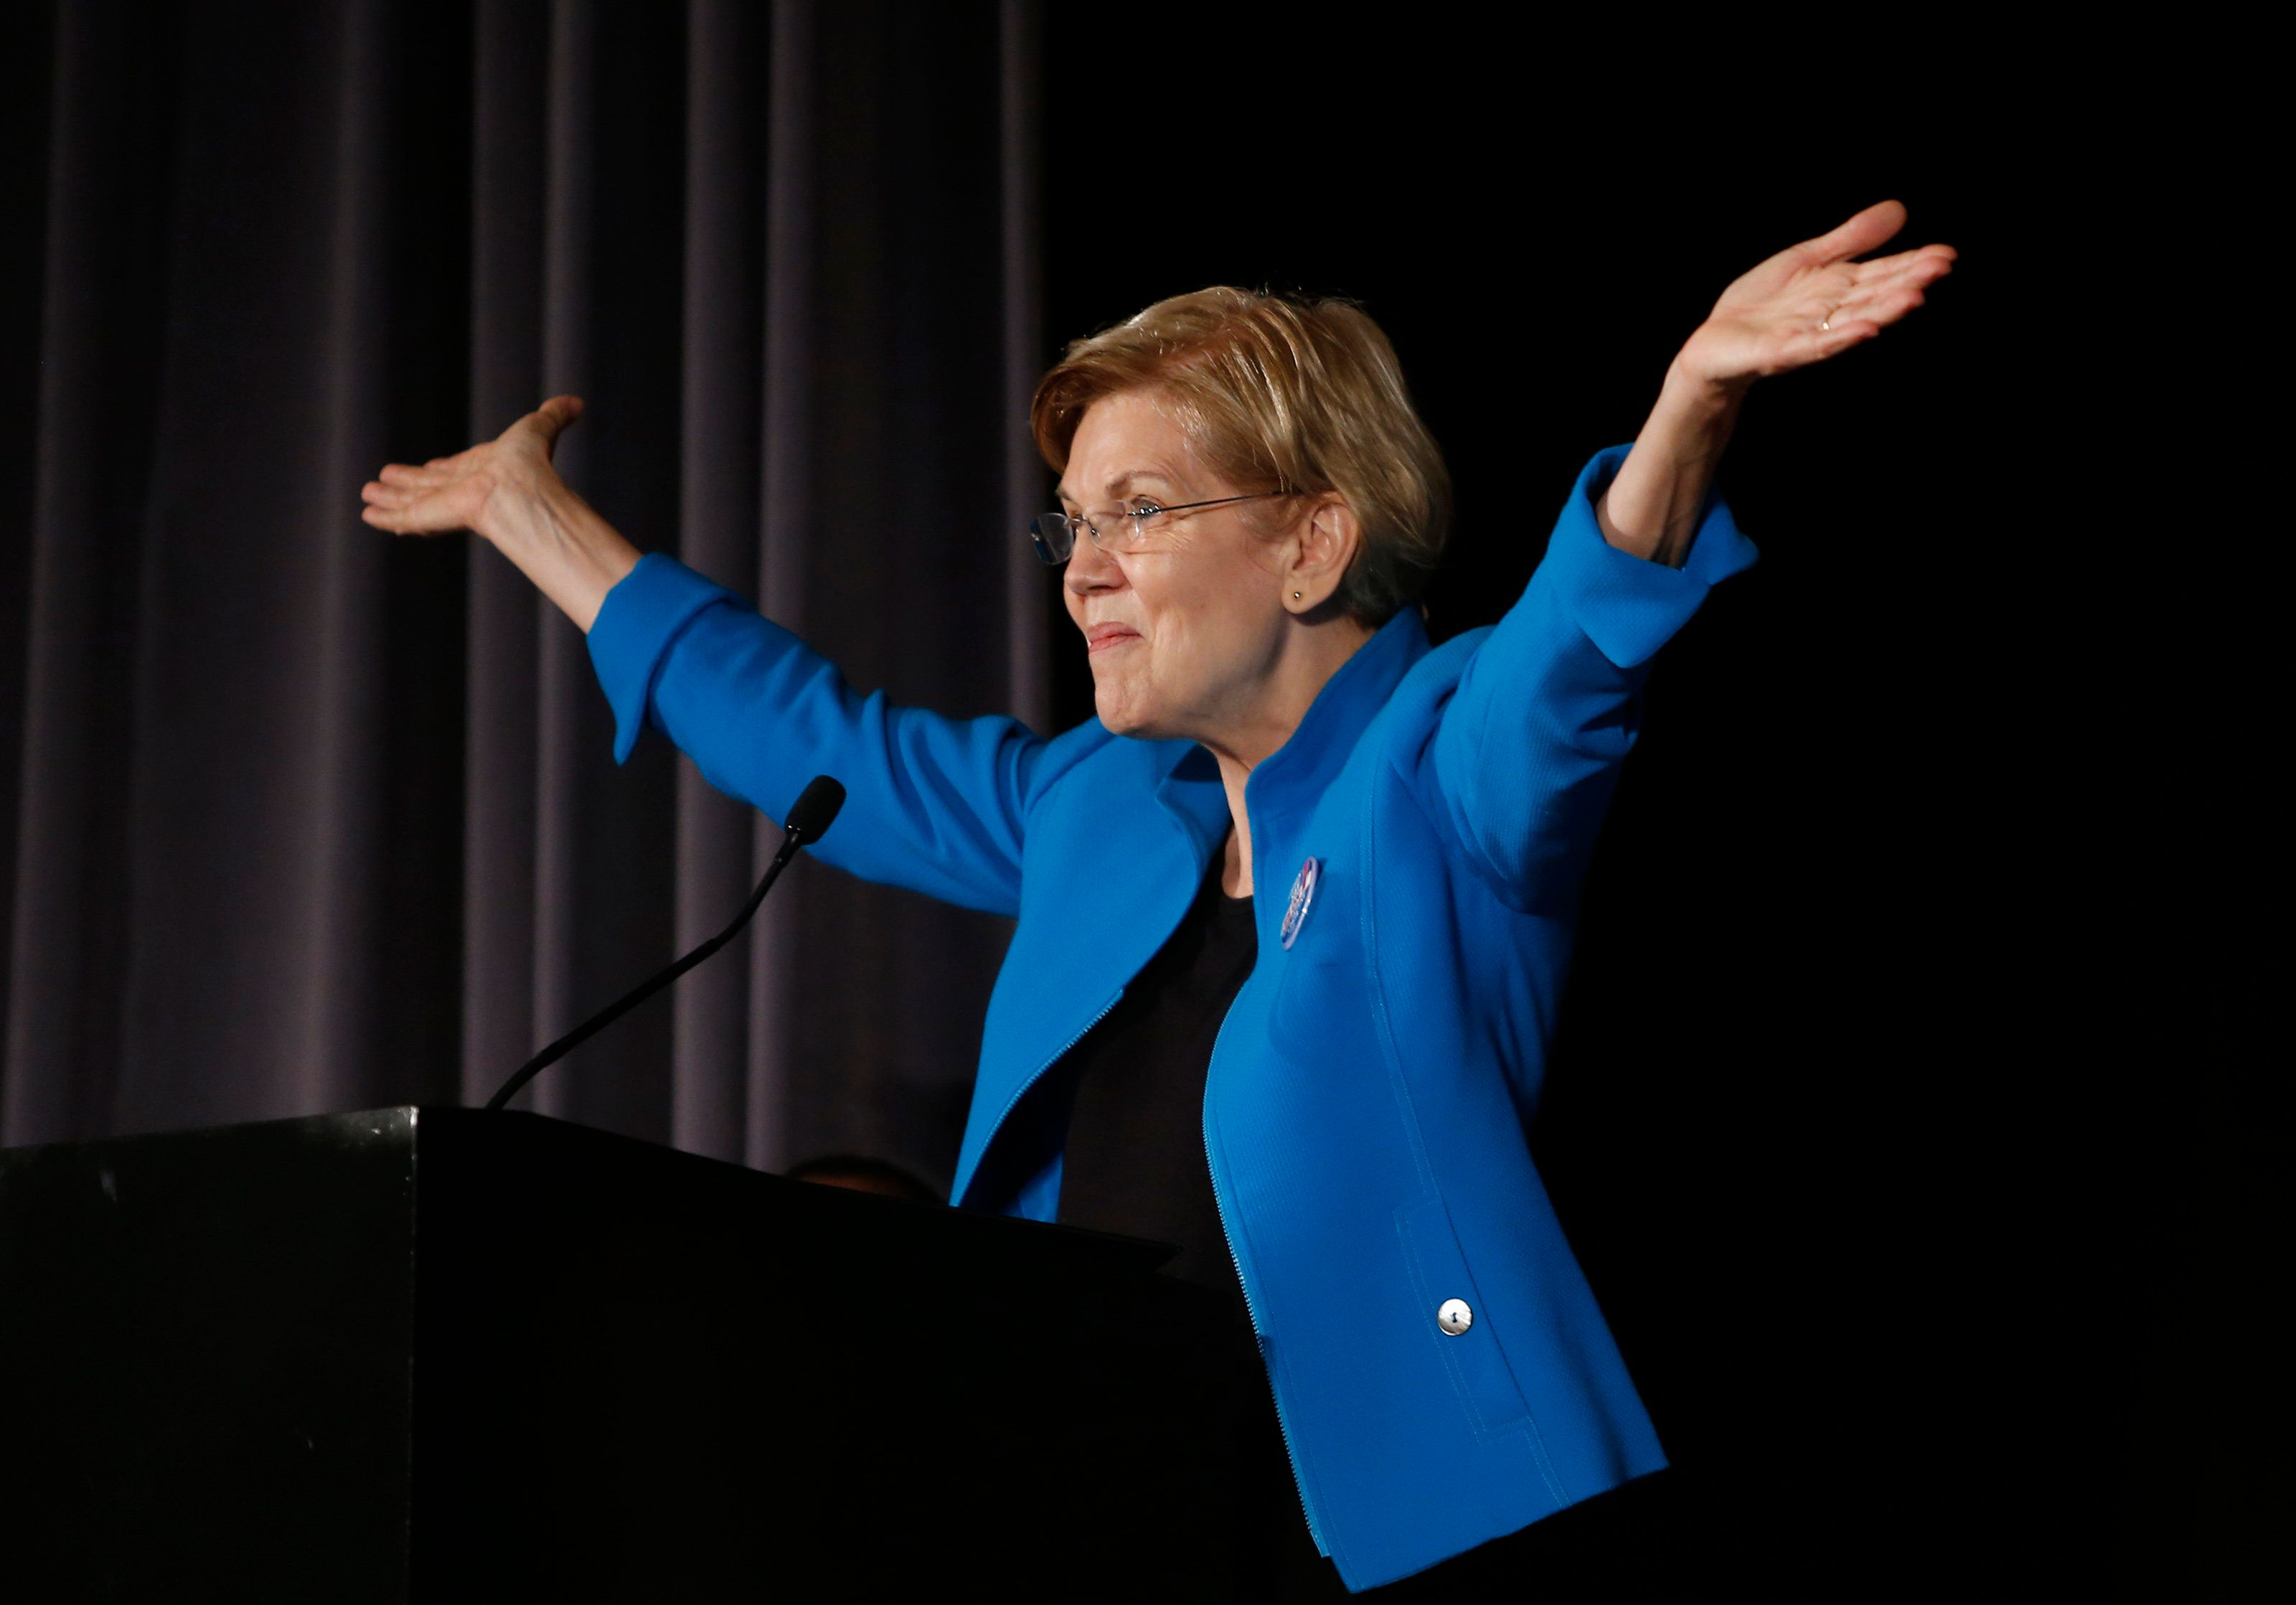 BOSTON, MA - SEPTEMBER 3: U.S. Senator Elizabeth Warren addresses the Greater Boston Labor Council's Annual Labor Day Breakfast in Boston on Sep. 3, 2018. (Photo by Jessica Rinaldi/The Boston Globe via Getty Images)